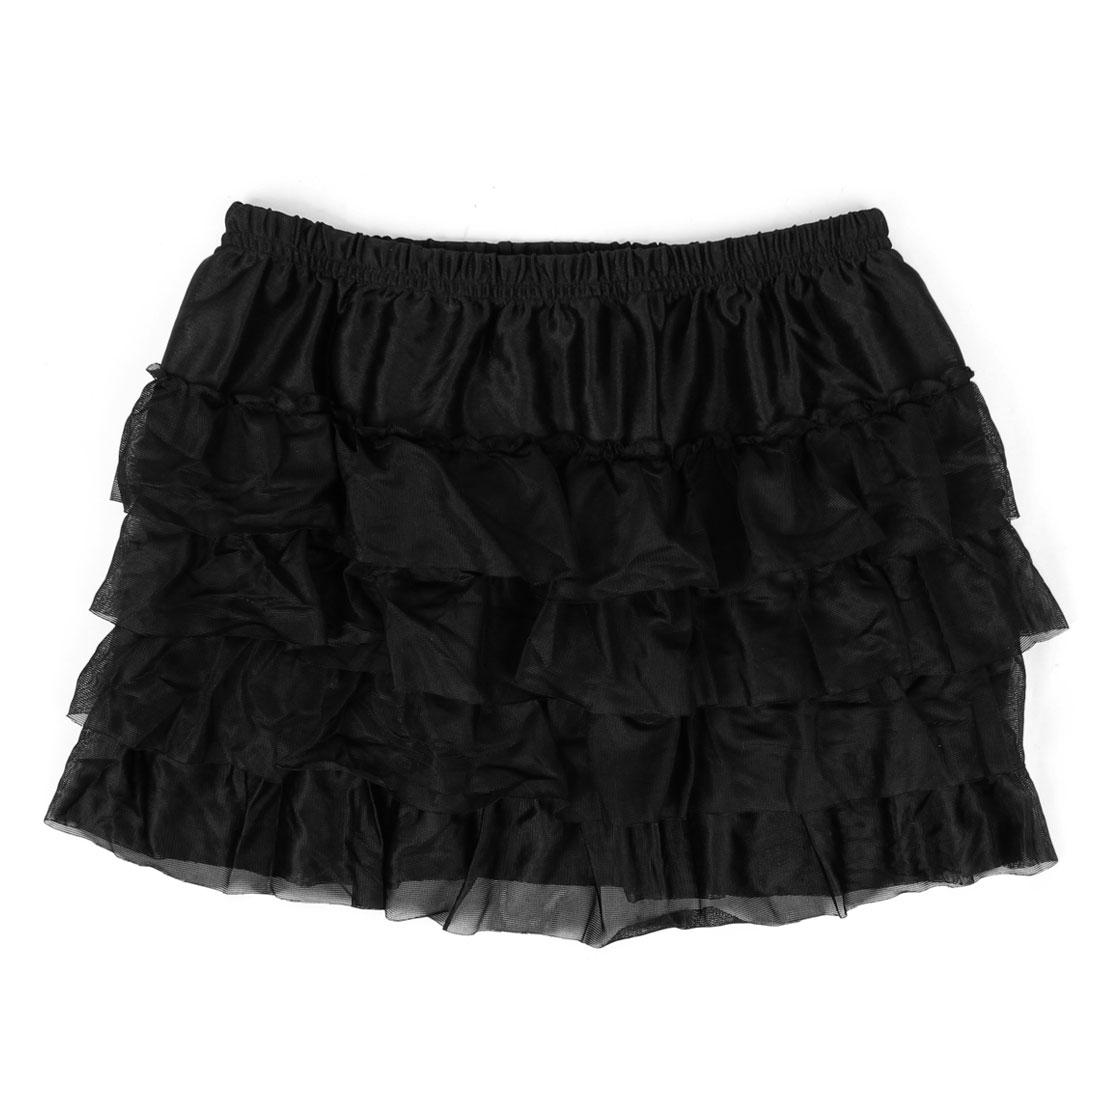 Woman Stretchy Waist Casual Summer Mini Skirt Black XS